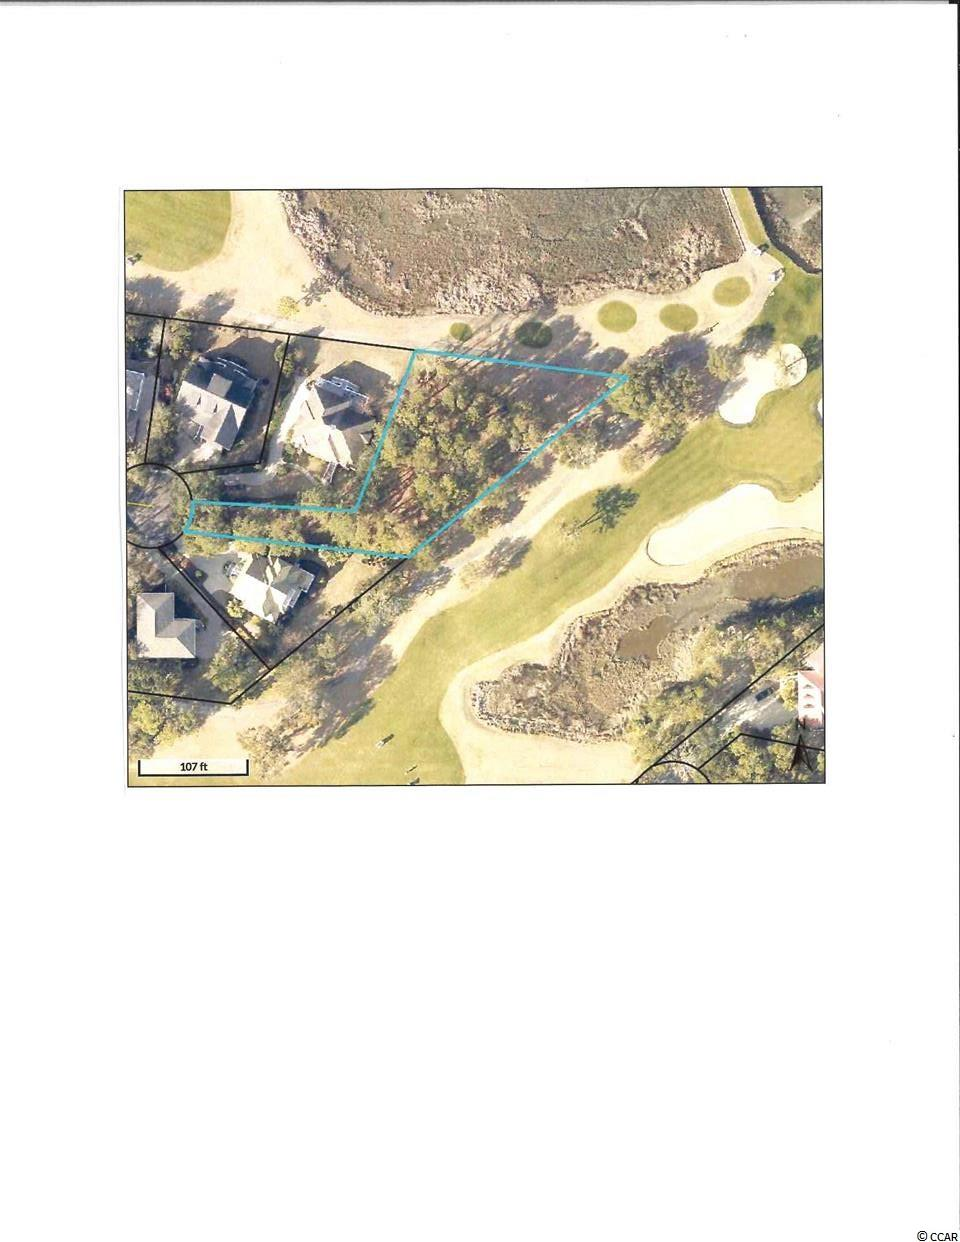 "Here is the perfect spot for your ""dream home"". This large 3/4 acre lot, located on a cul-de-sac that overlooks the 13th and 16th greens as well as the 14th tees of this Jack Nicklaus designed golf course also has panoramic views of the salt marsh and Pawleys Island. You will be able to sit on your porch, watch the golf, the birds in the marsh, or listen to the ocean on the Island. There are unlimited possibilities of what you can build here. The seller has an ARB preliminary pre-approved home plan that can be available to you, or you can bring your own builder and use your plans to build your perfect home. There is no time frame for building, so you can build now or later if that fits your plans. Located in the gated community of Pawleys Plantation, there are restaurants, shopping, and beach nearby as well as the golf at Pawleys Plantation or any of the other 7 courses located in Pawleys Island. Seller has a transferable membership to Pawleys Plantation for interested buyers. This community is located 70 miles north of Charleston and 30 miles south of Myrtle Beach. Come take a look at this view, you will wonder why you waited so long."